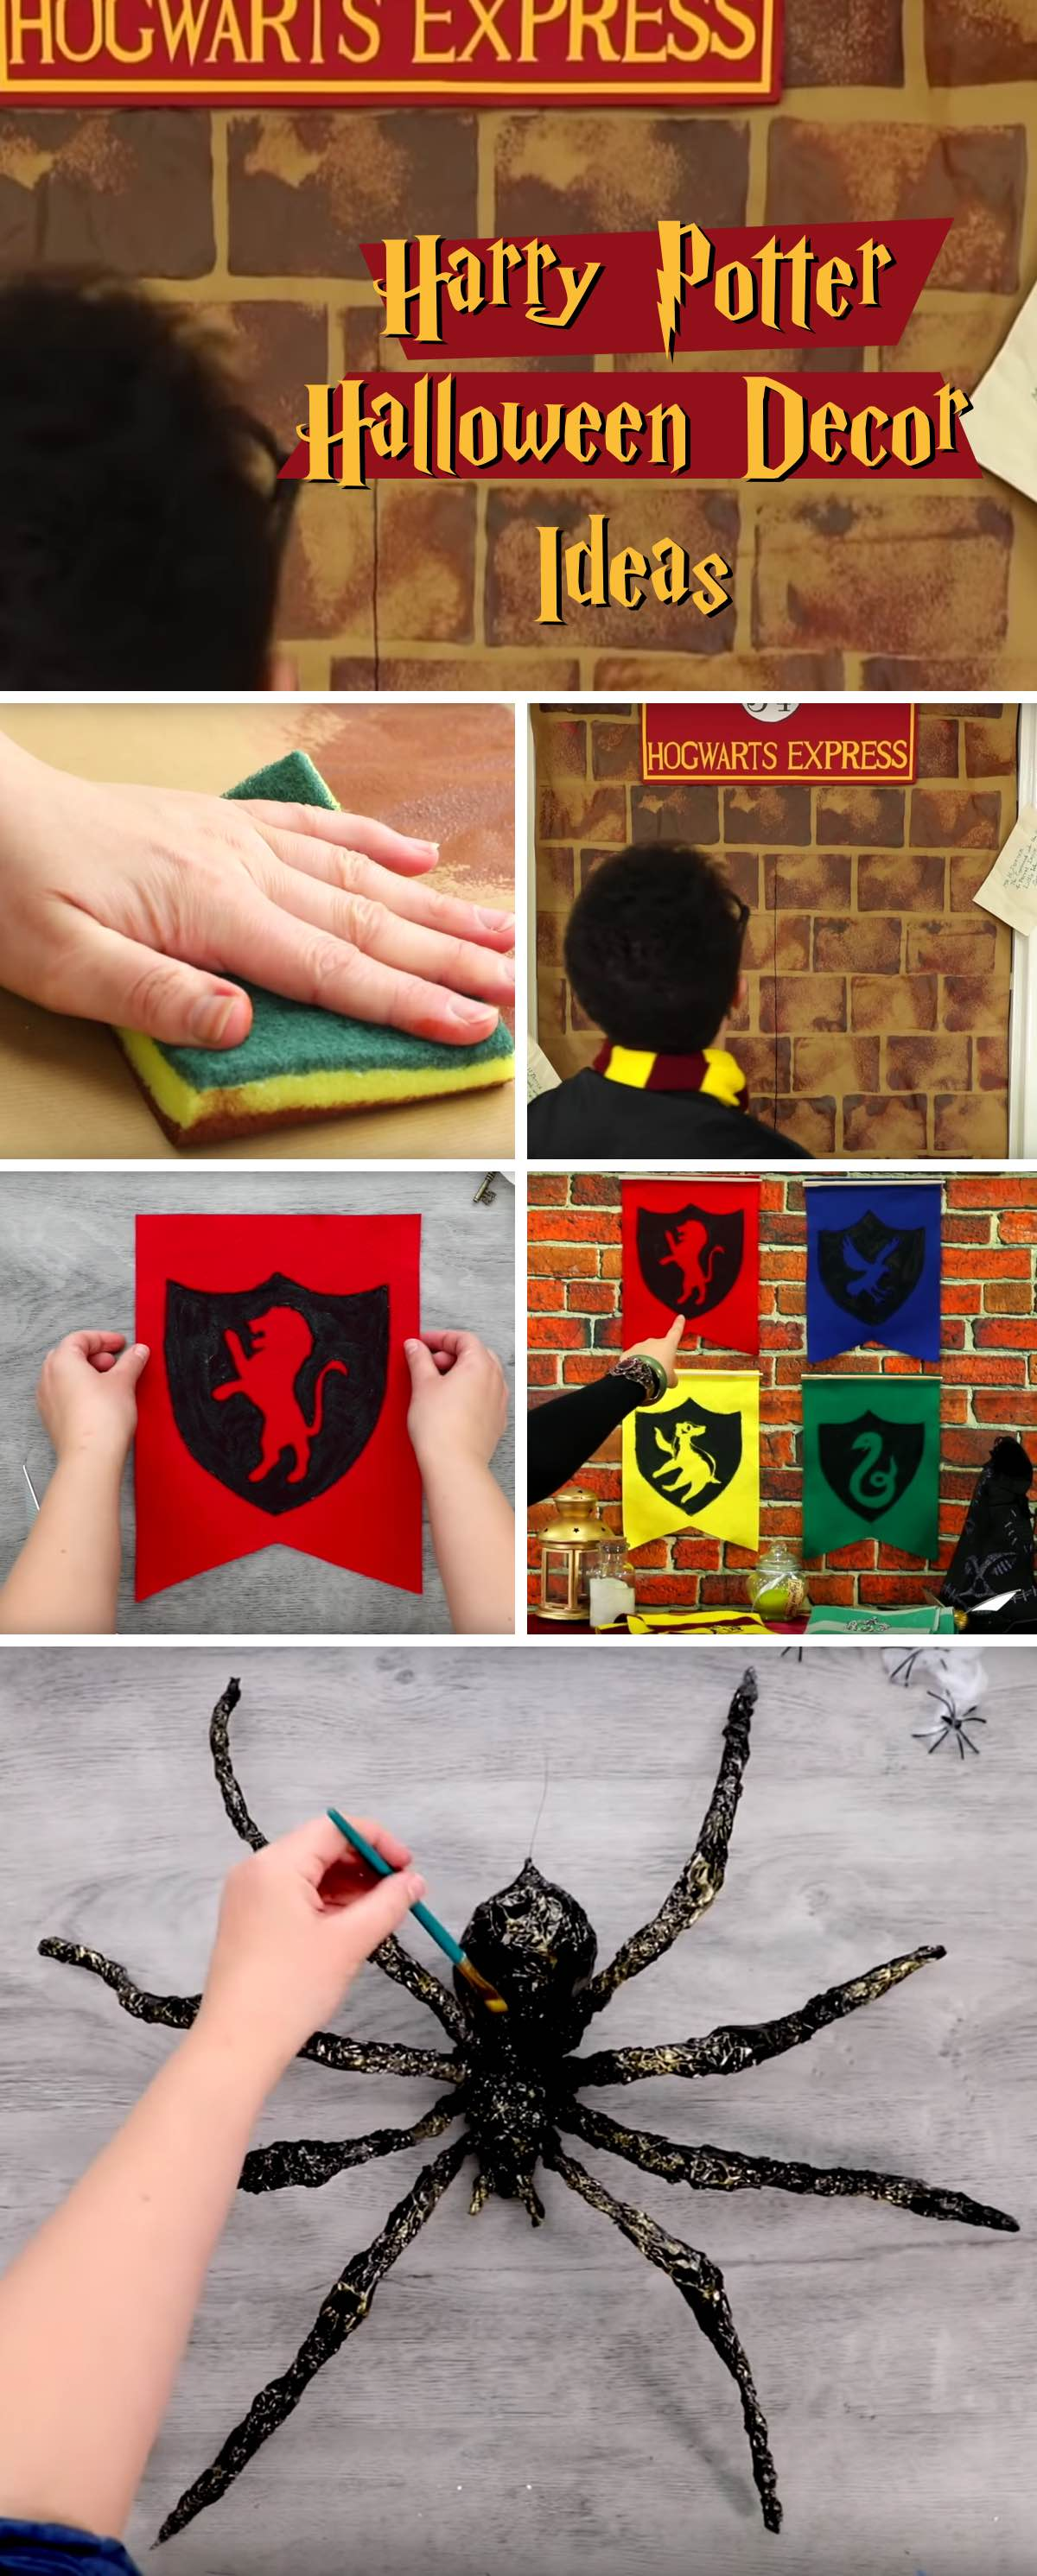 These 4 Harry Potter Decor Ideas are All you Need for a